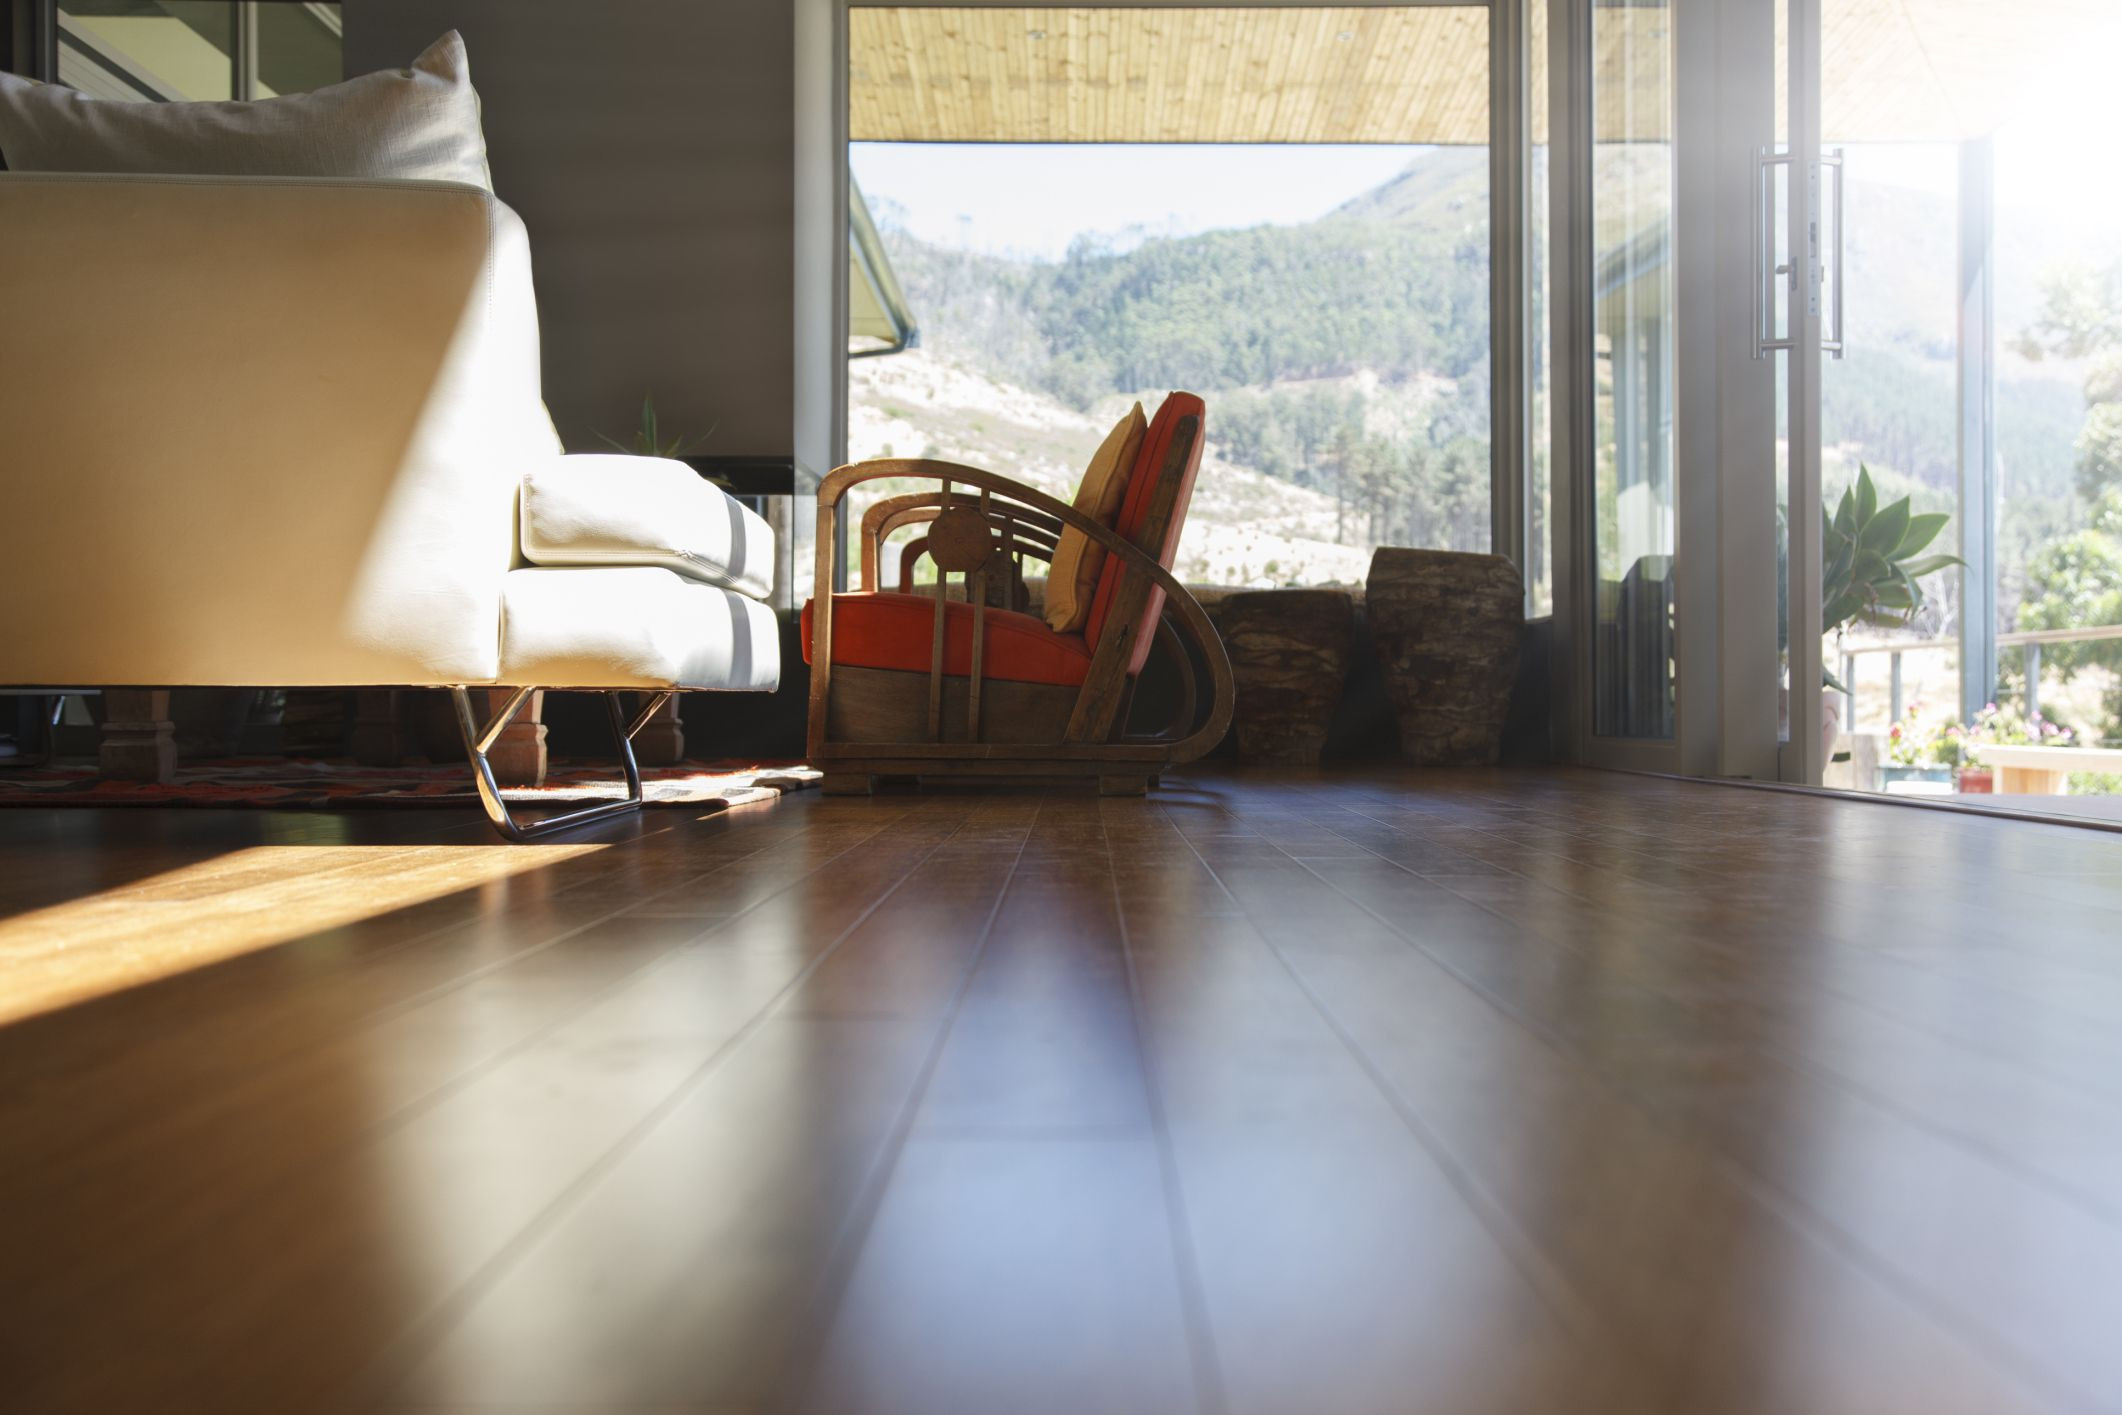 engineered vs solid hardwood flooring cost of floating floors basics types and pros and cons throughout exotic hardwood flooring 525439899 56a49d3a3df78cf77283453d